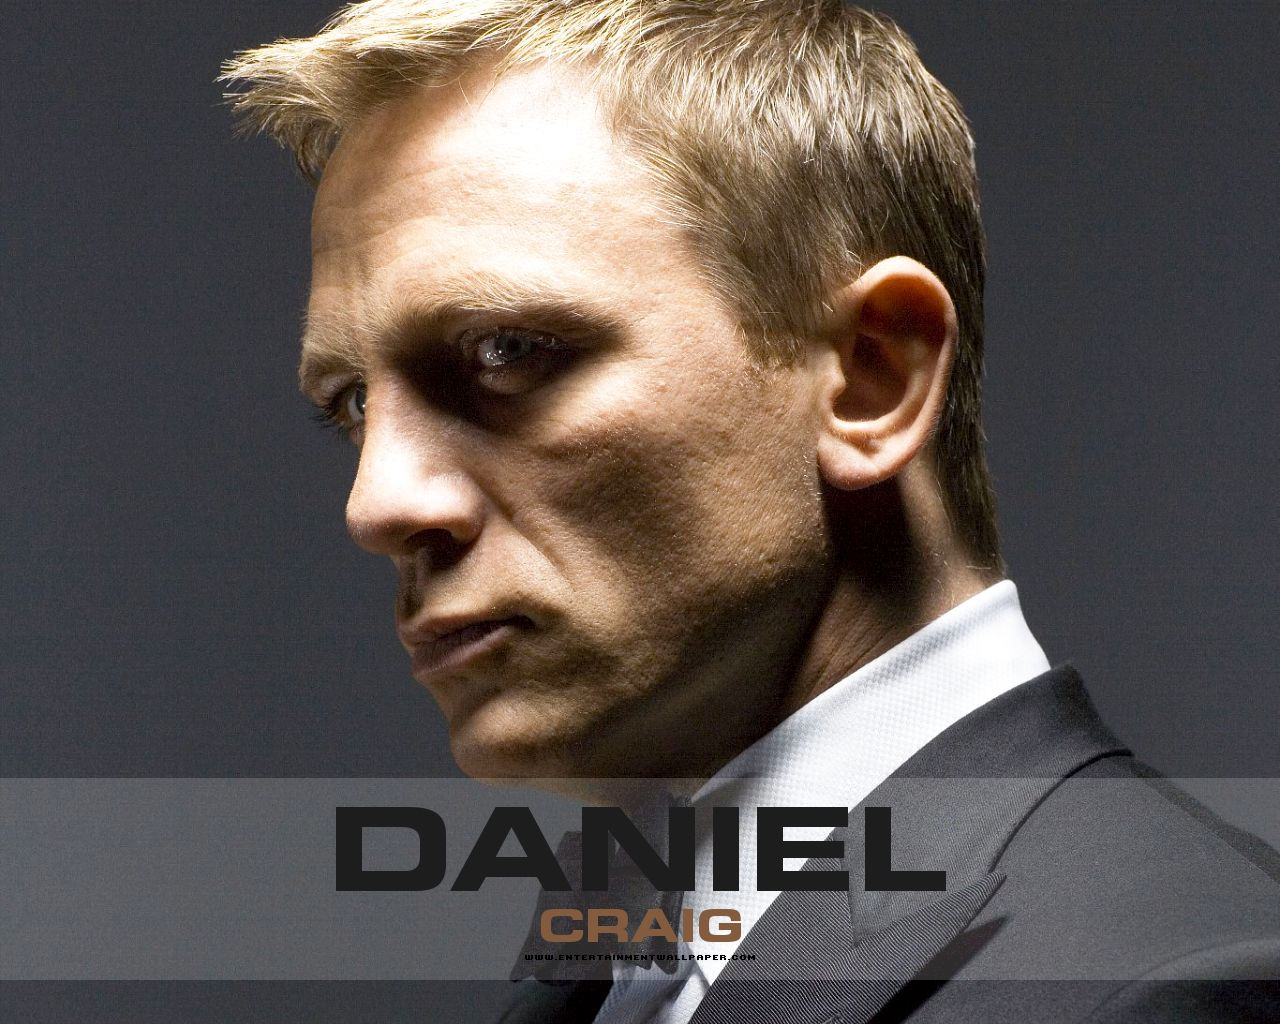 http://2.bp.blogspot.com/-dy9VfJx522Q/UDJ2nWnZYqI/AAAAAAAAVOM/AYVTuH_rQ-w/s1600/Is-Daniel-Craig-the-best-james-bond.jpg